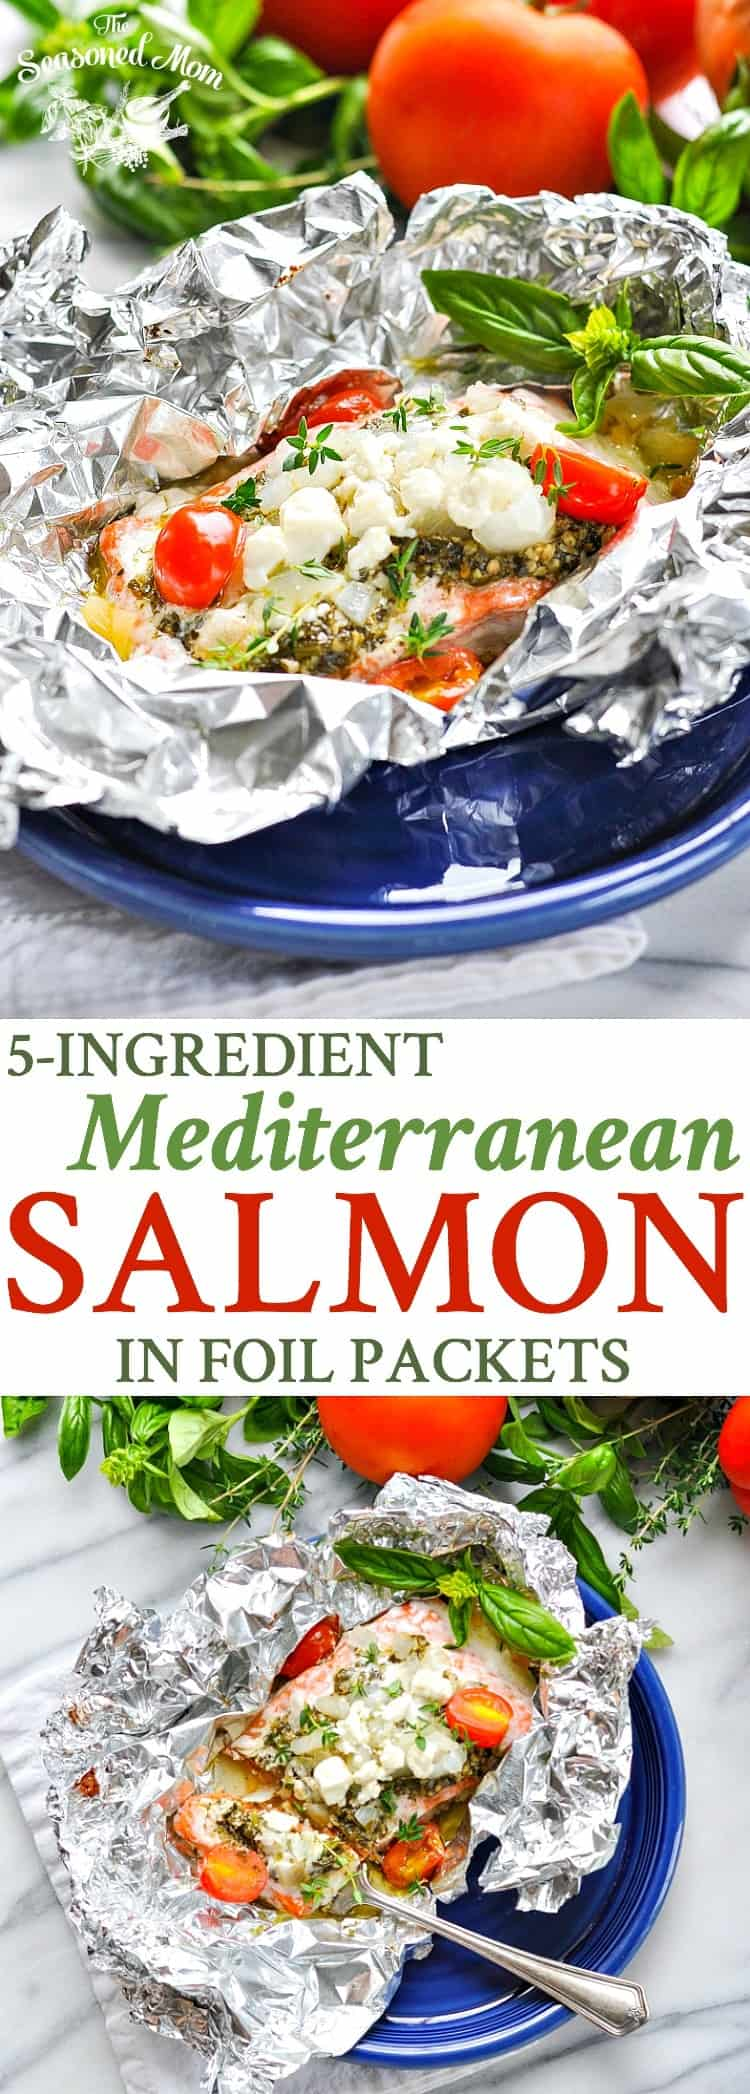 5-Ingredient Mediterranean Salmon in Foil Packets | Seafood Recipes | Easy Dinner Recipes | Dinner Ideas | Healthy 5 Ingredient or Less Recipes | Healthy Recipes | Salmon Recipes Baked | Camping Food | Camping Meals